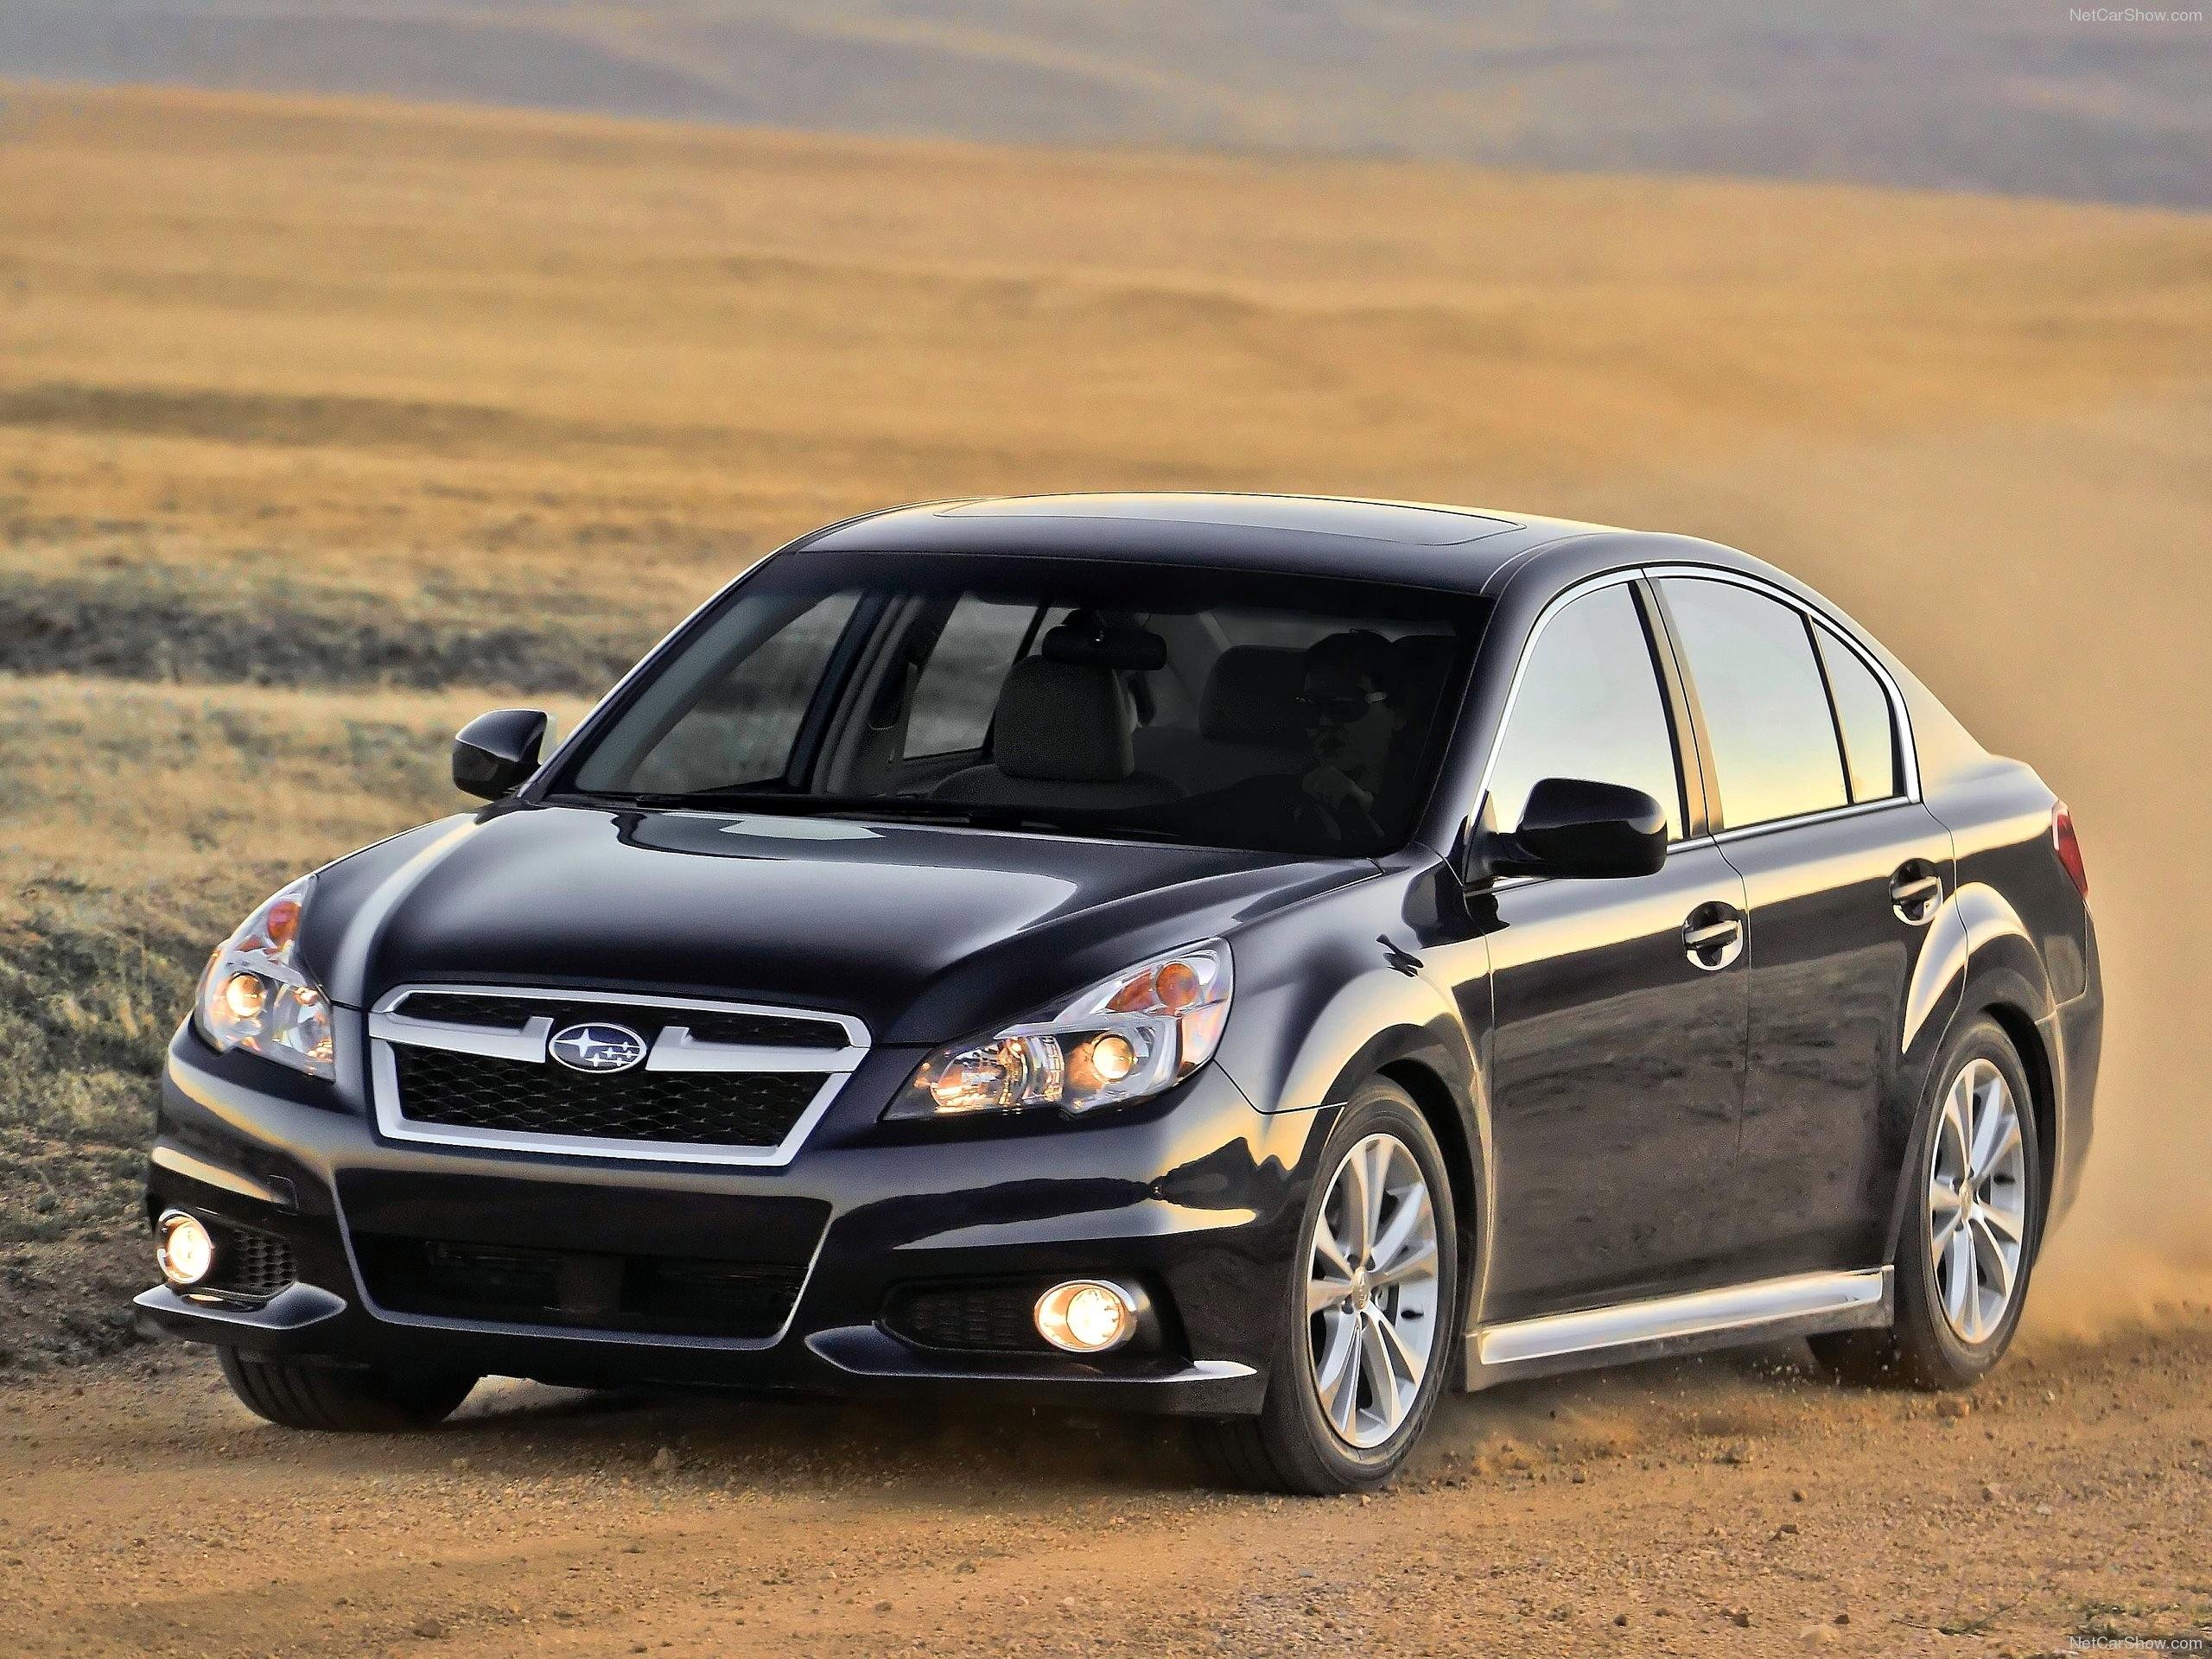 Subaru Legacy Wallpapers HD Download 2560x1920